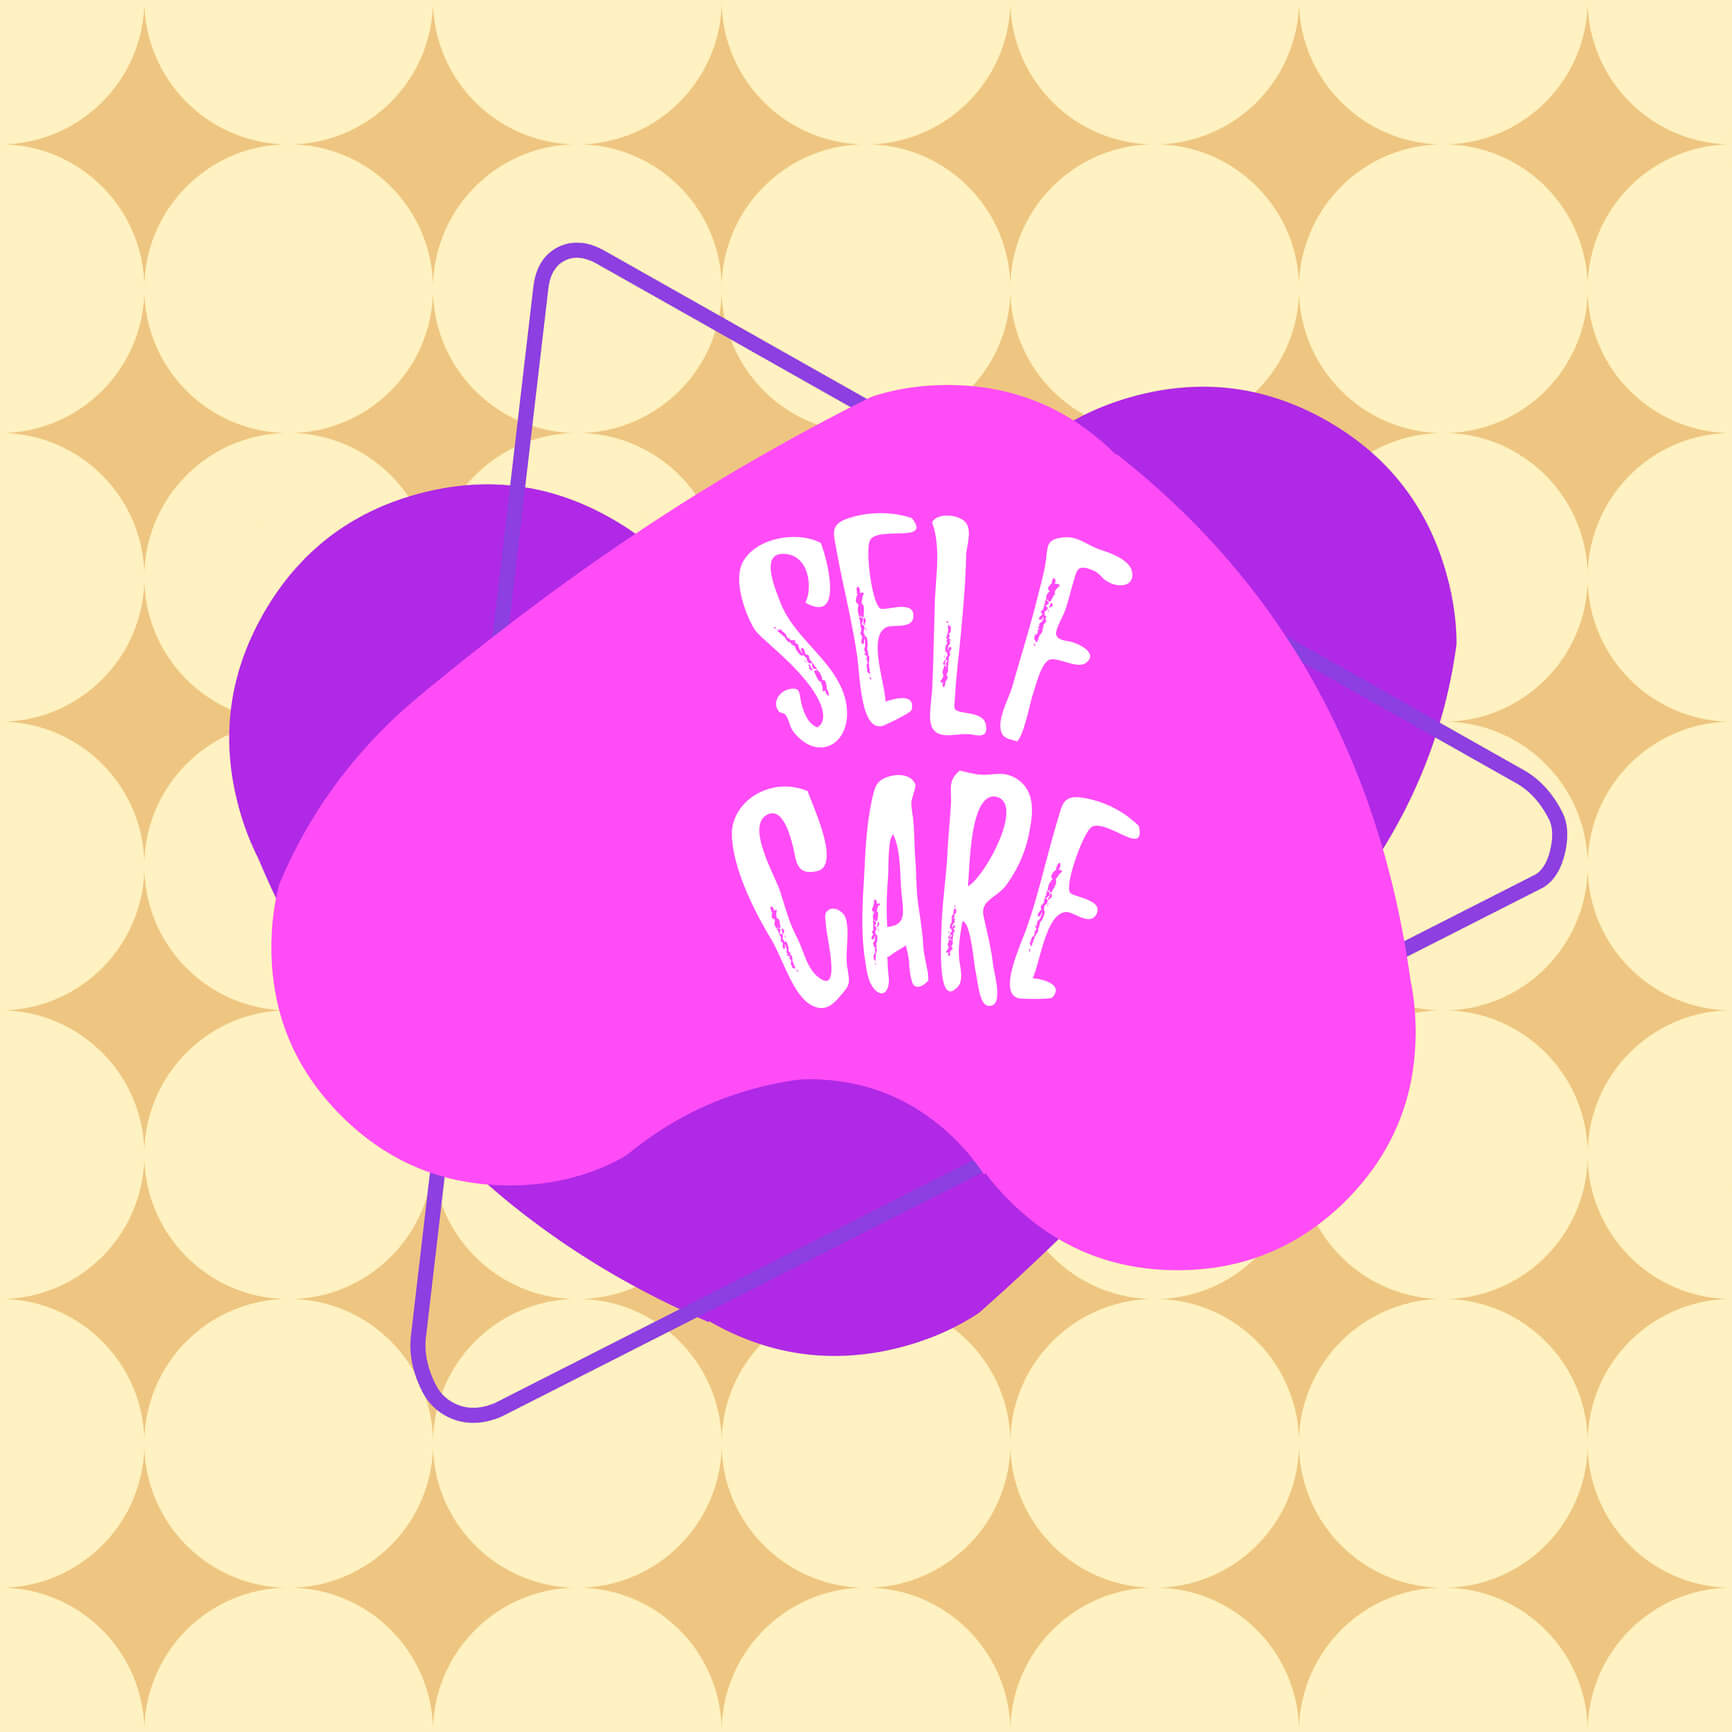 Self-care is important for nonprofit employees and volunteers